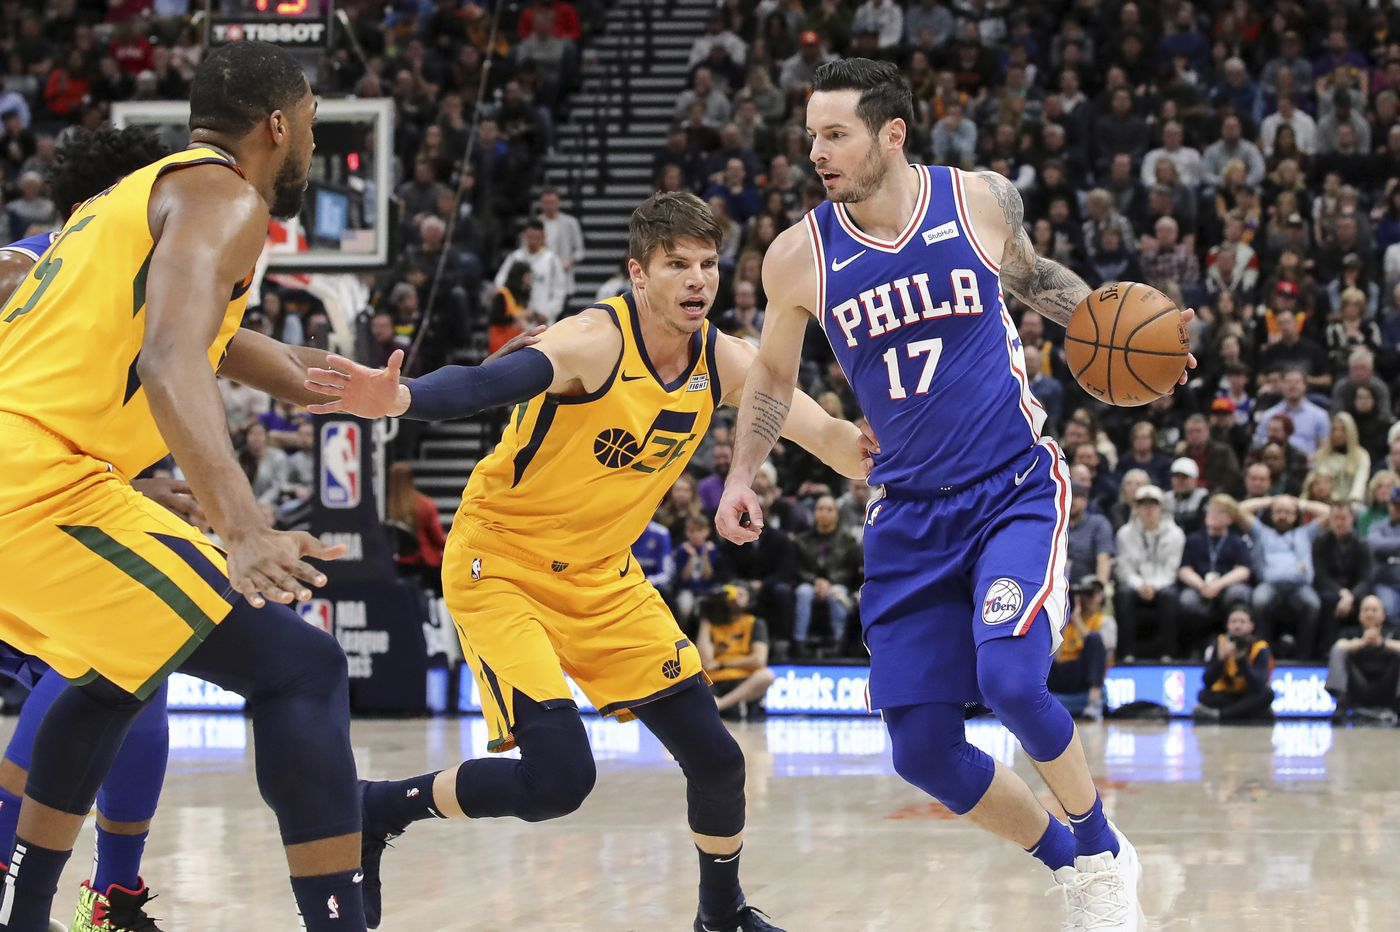 Sixers still looking for a shooter, having not replaced JJ Redick yet